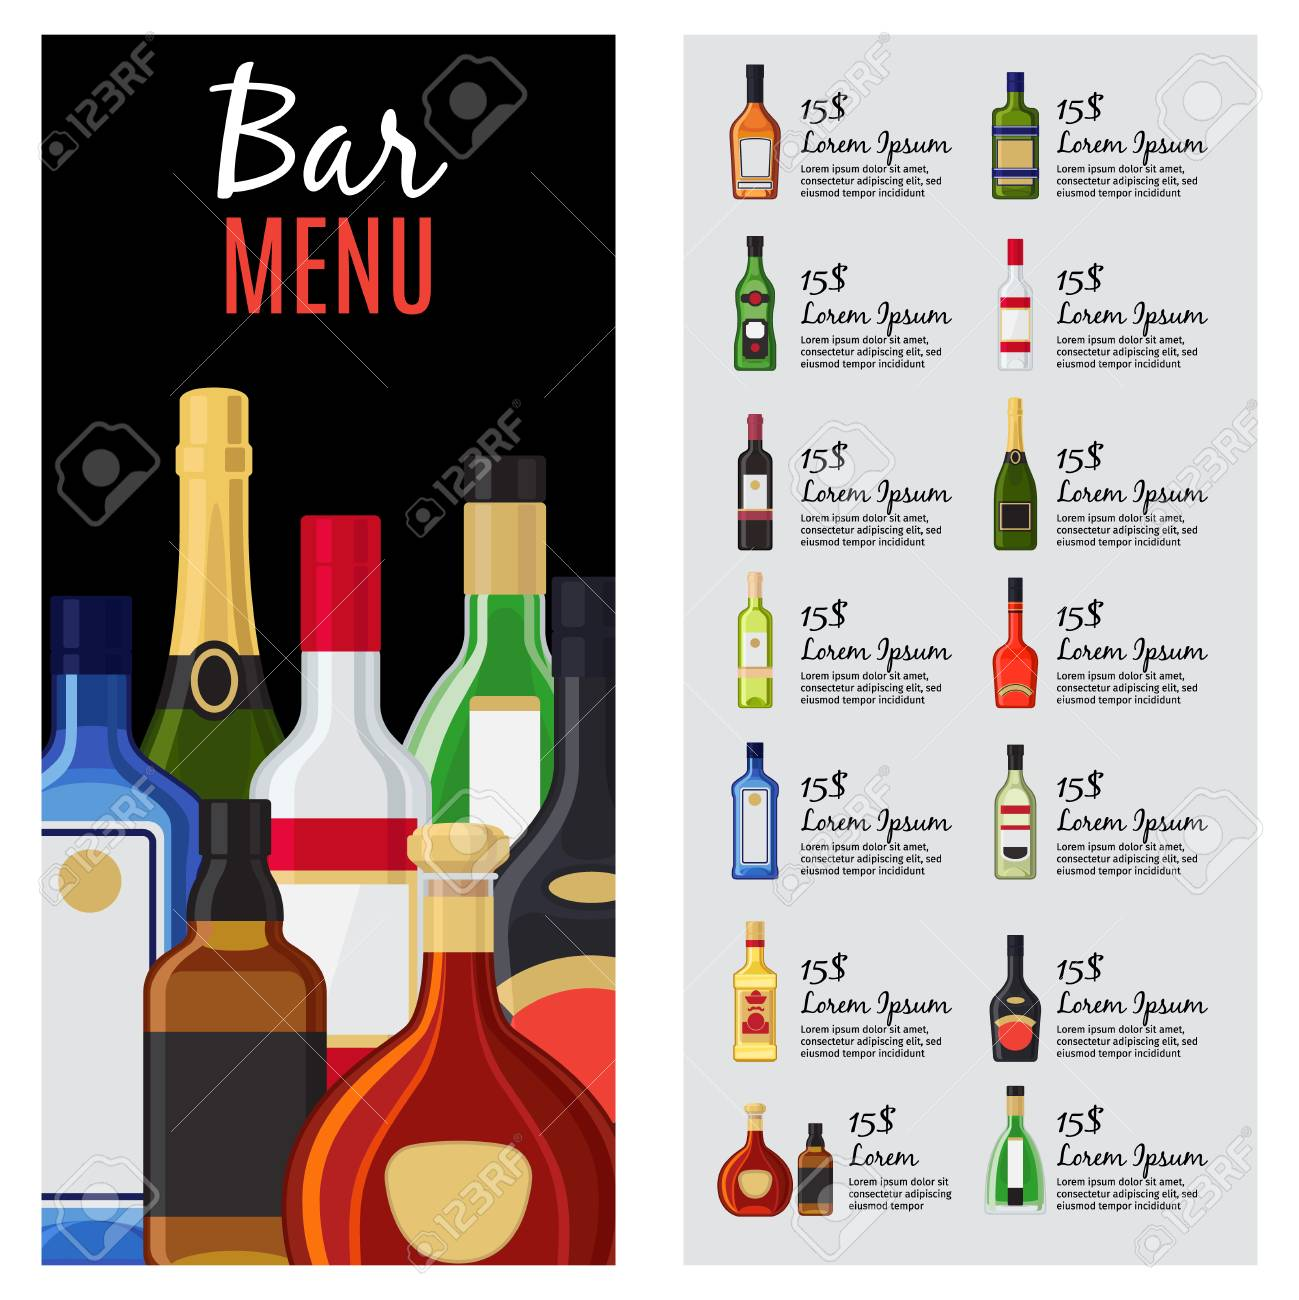 Alcohol Drinks Menu Template For Bar And Restaurant With Bottles,  Description And Prices. Vector  Drinks Menu Template